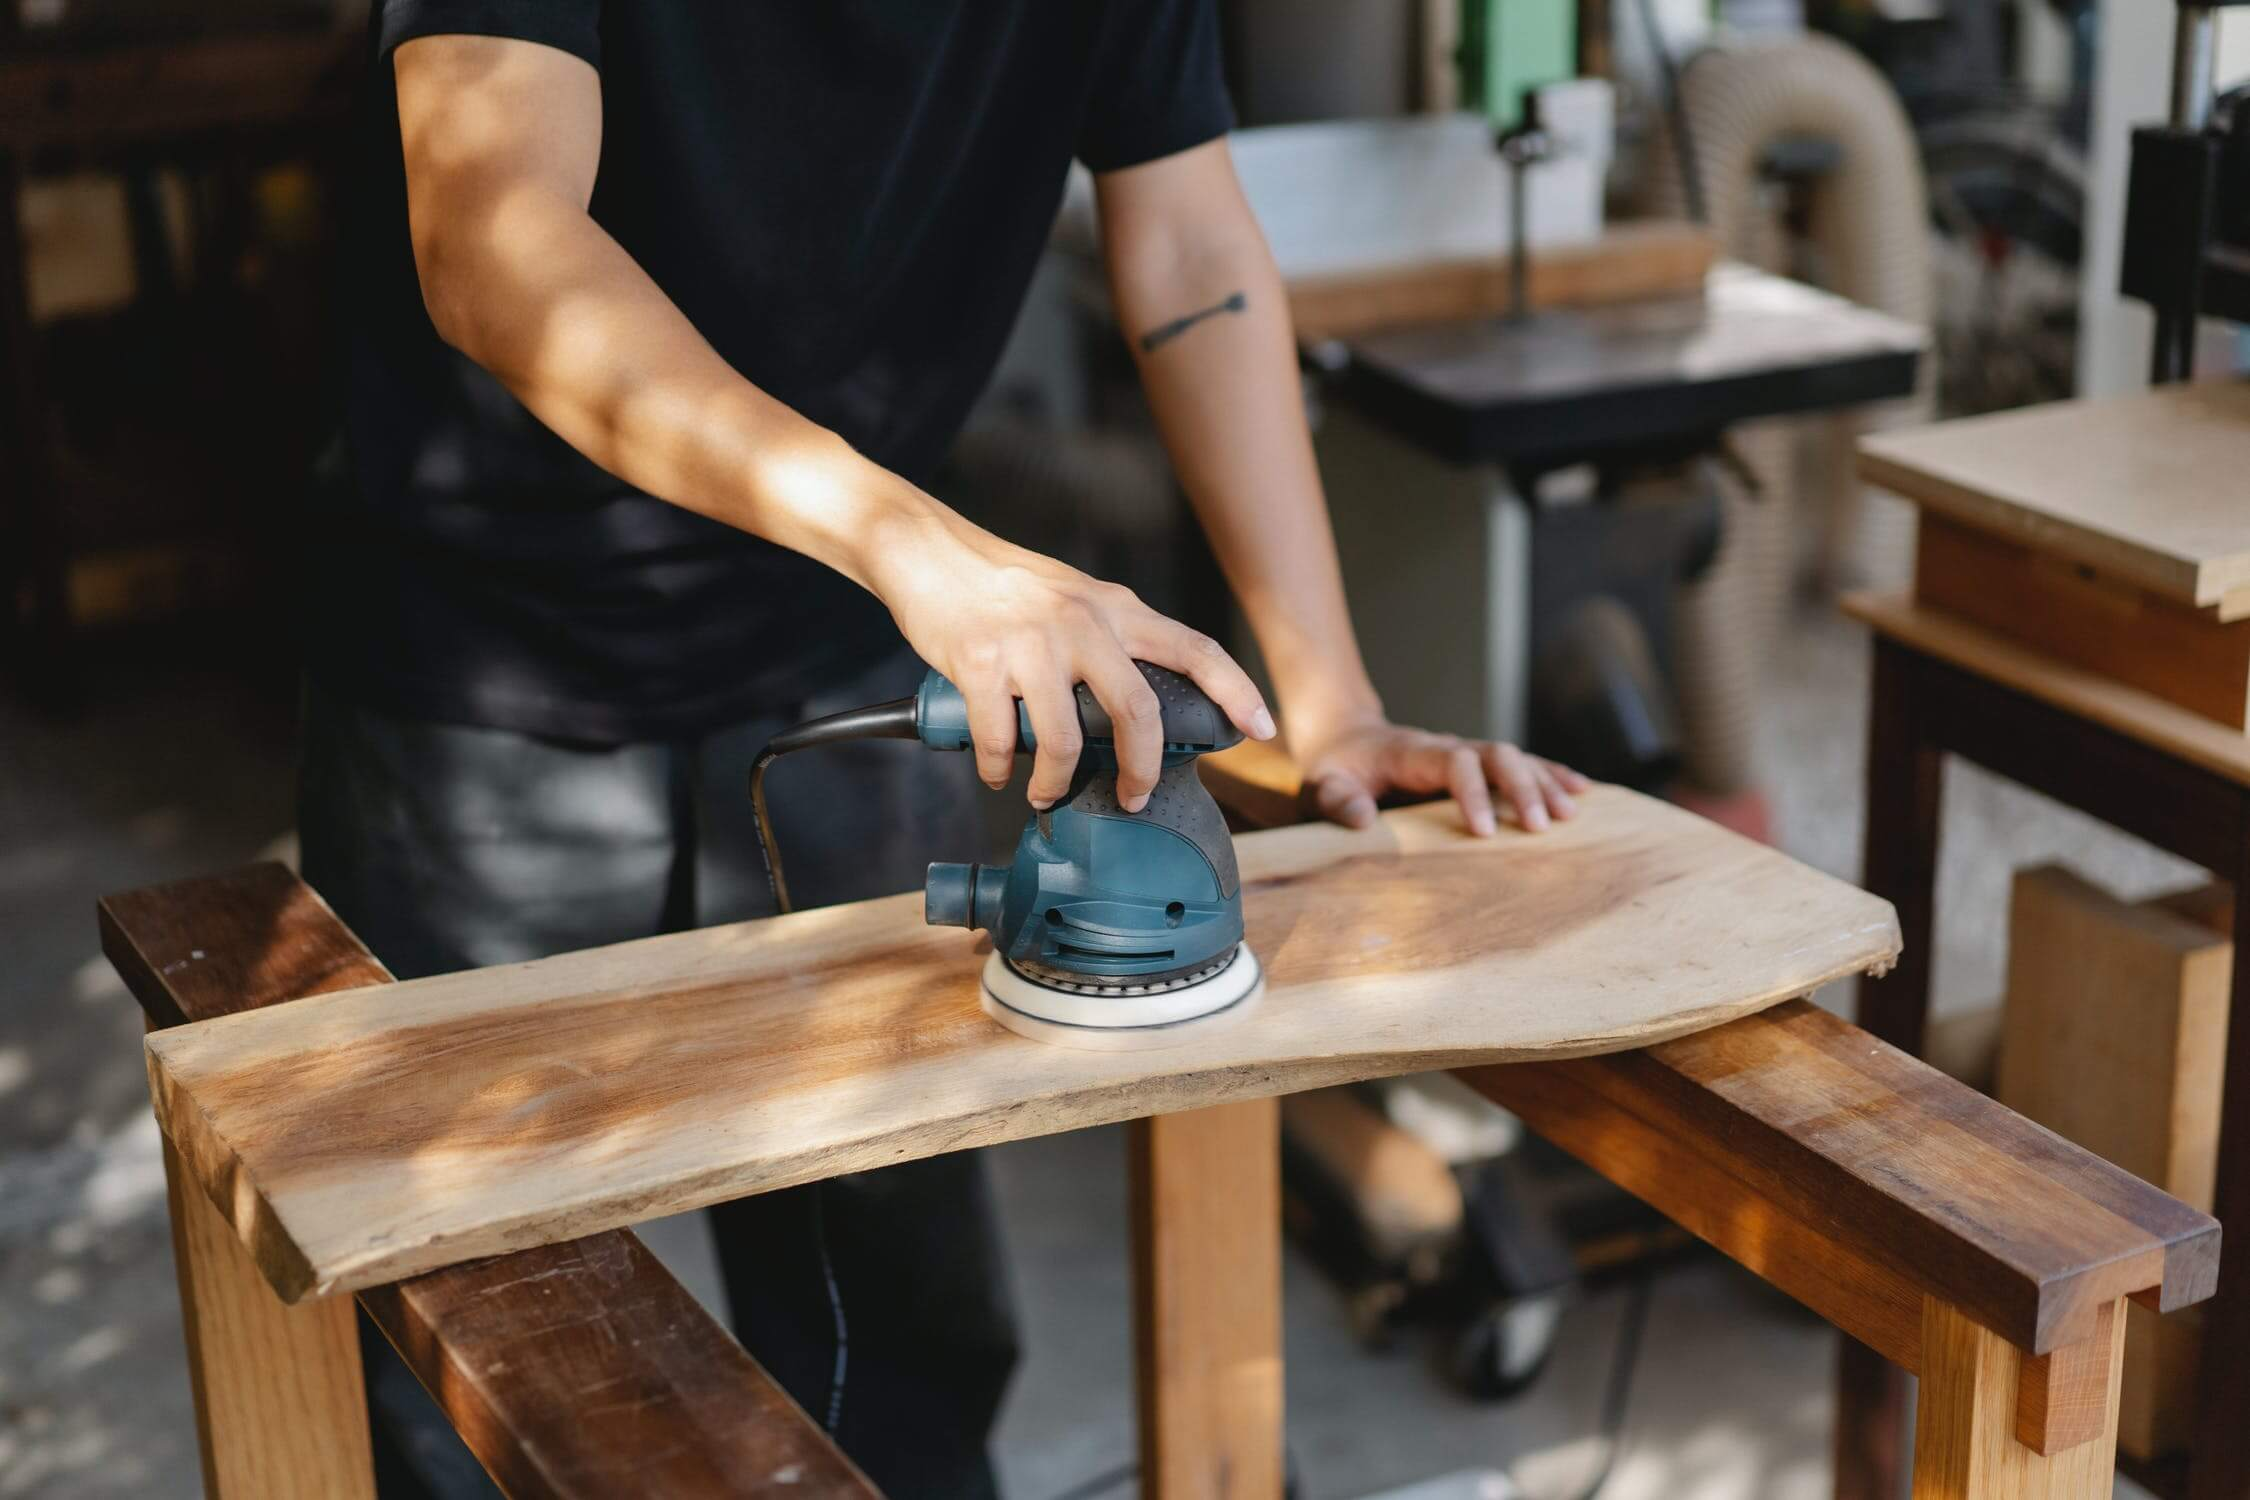 Trade school student cuts a piece of wood with an electric saw as he studies woodworking